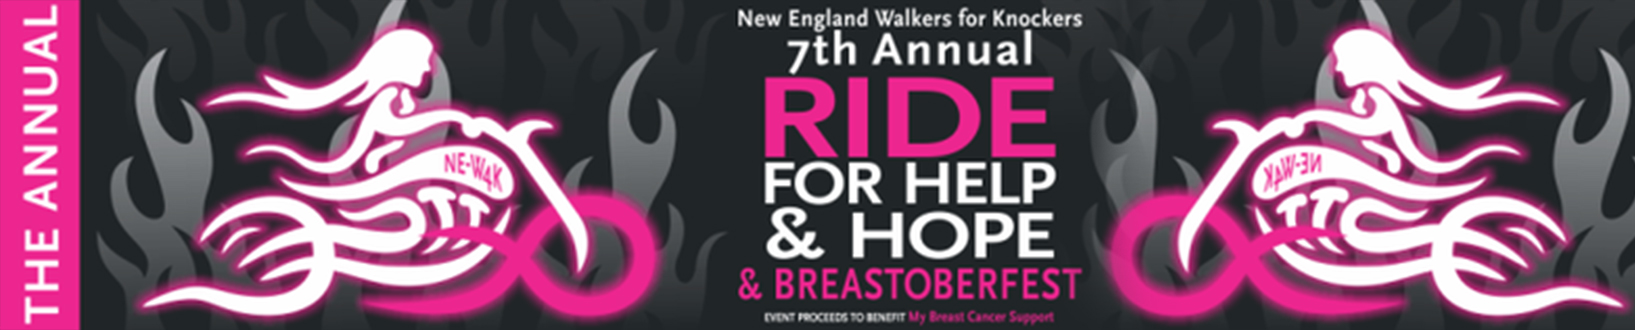 Ride for Help and Hope